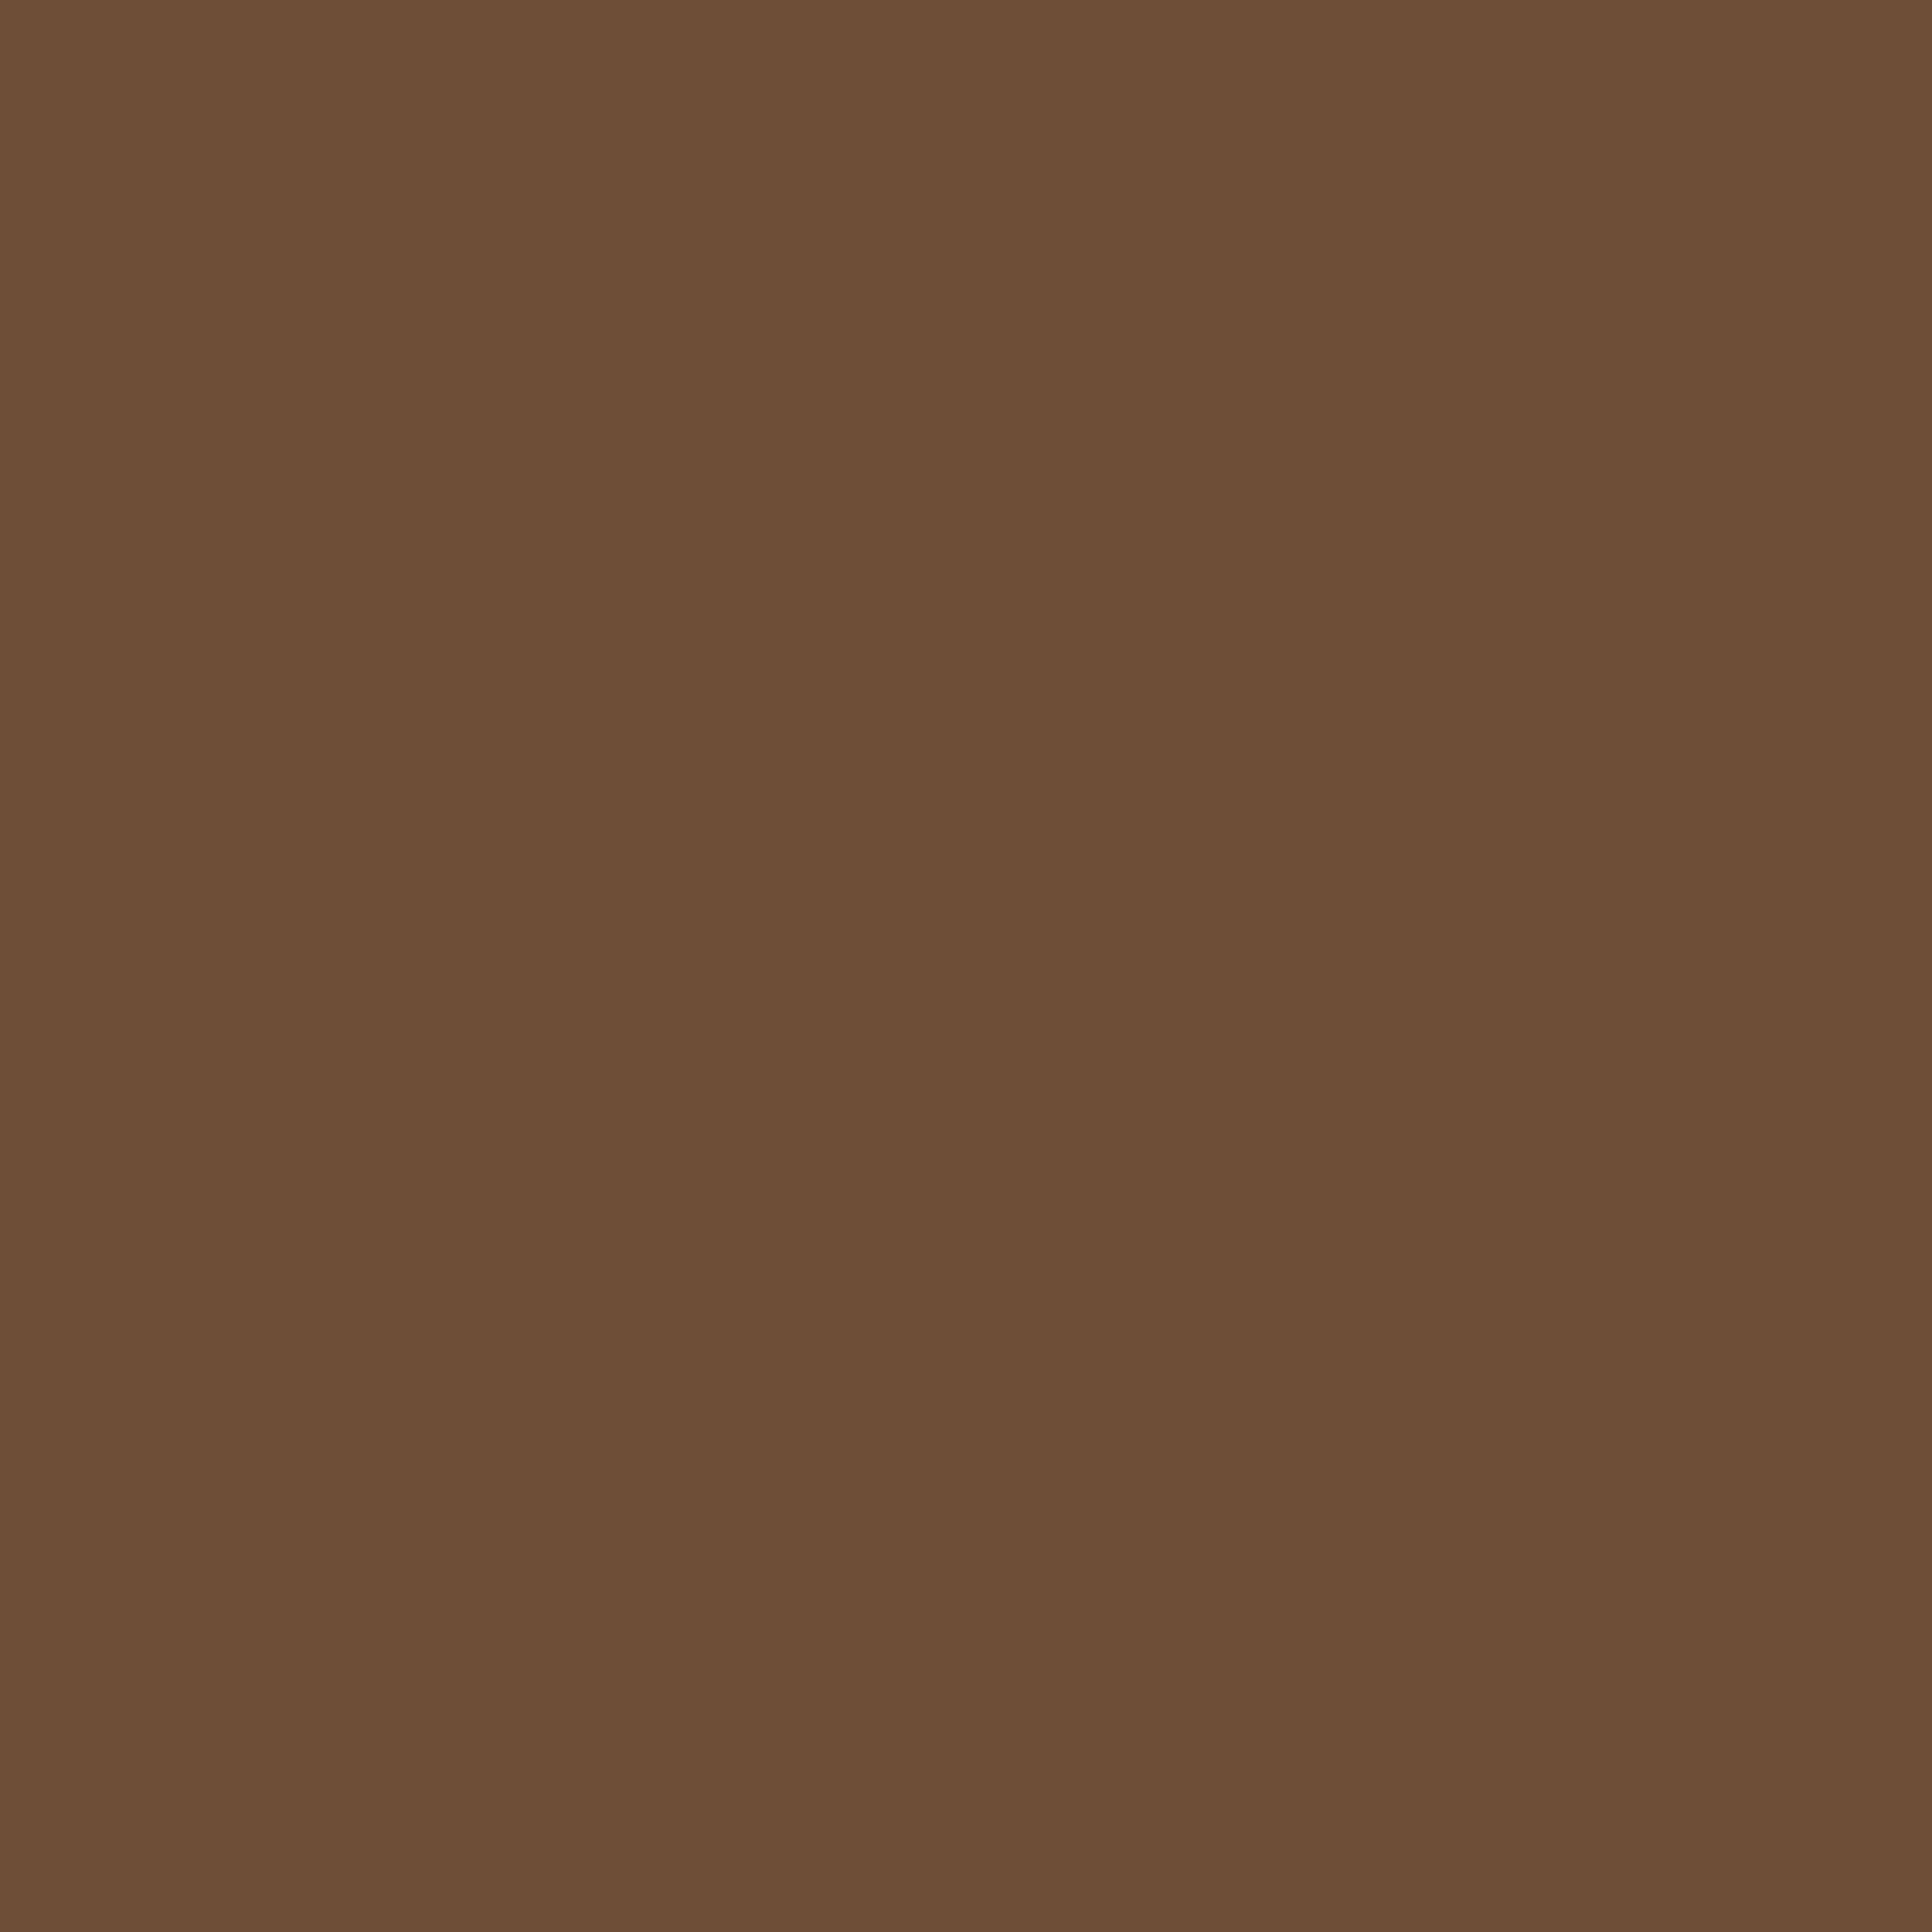 2732x2732 Coffee Solid Color Background